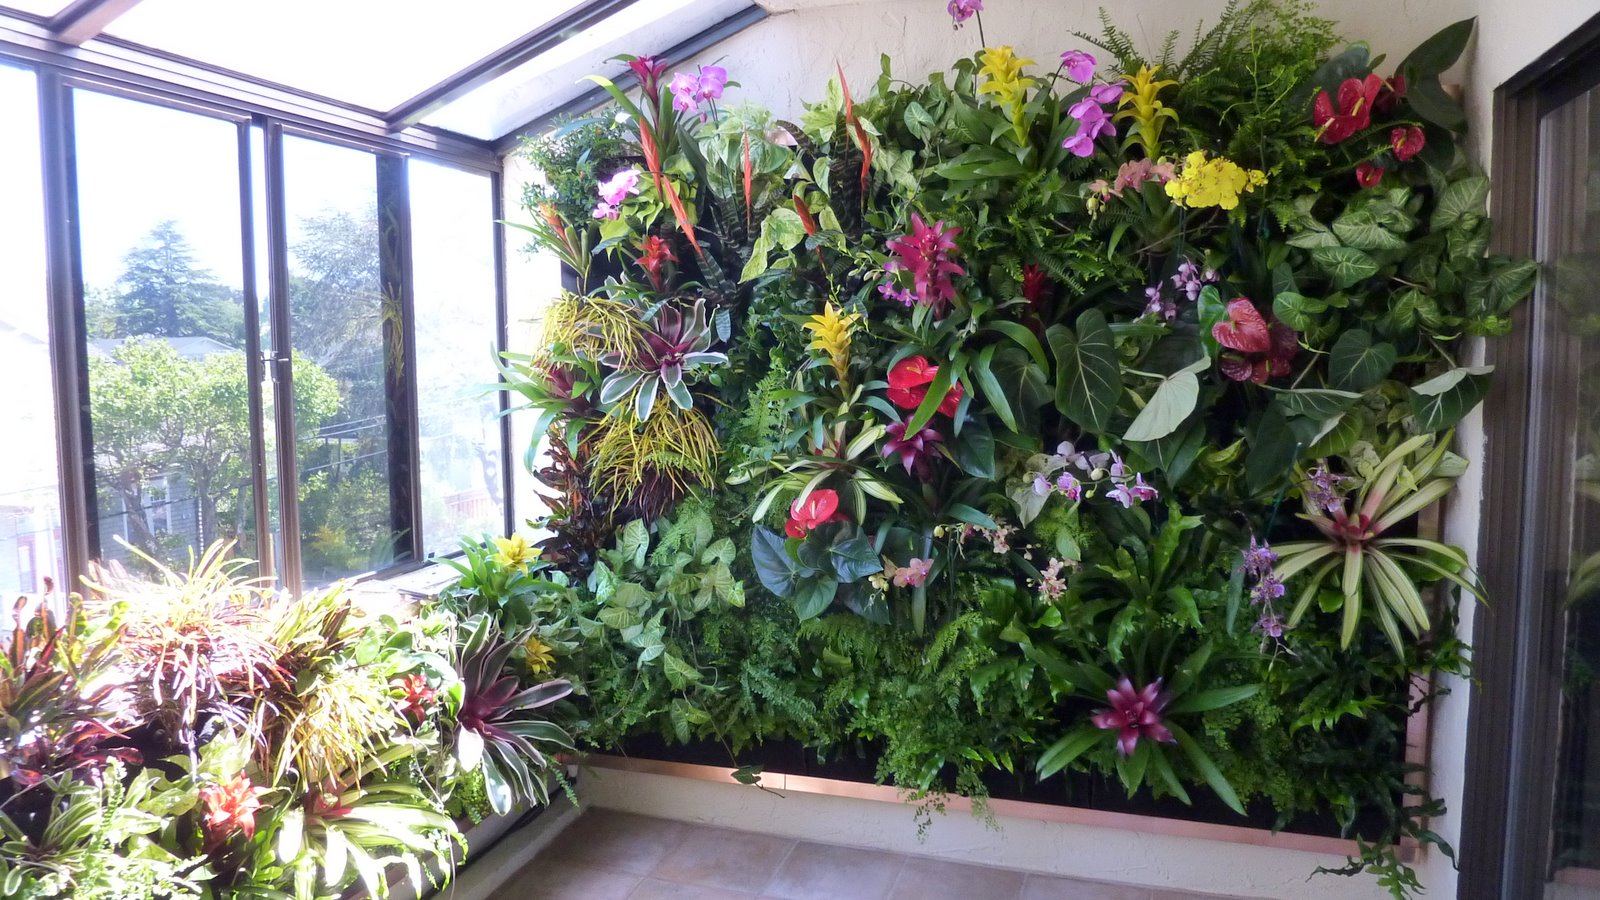 plants on walls vertical garden systems june 2011. Black Bedroom Furniture Sets. Home Design Ideas